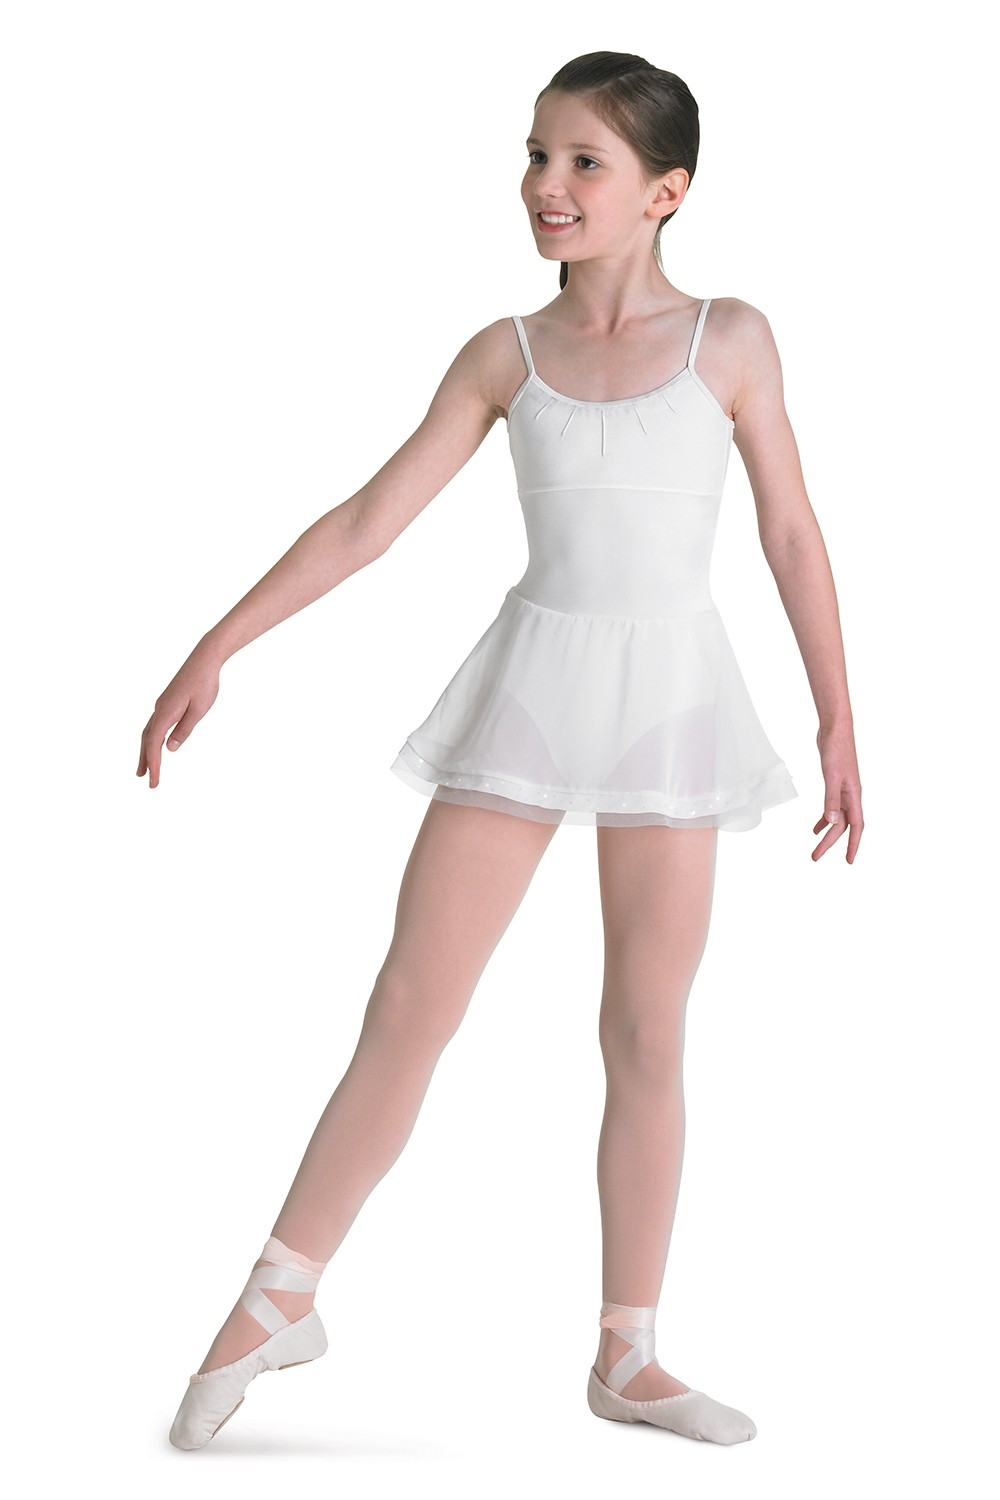 Cami Leo With 3 Tier Skirt Children's Dance Leotards